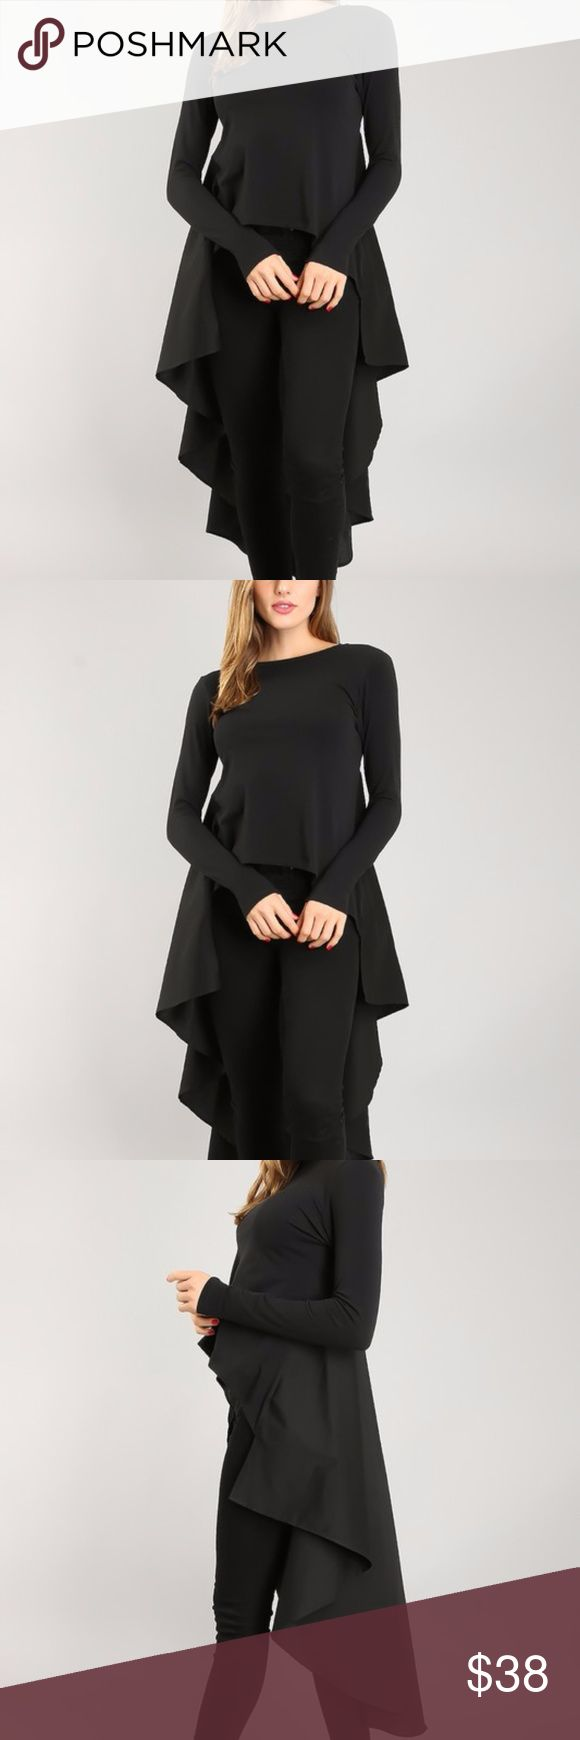 Black Hi Lo Ruffle Swing Tunic Top Fashion Blouse Black Hi Lo ruffle swing tunic top. Long sleeves. Boat neckline. Polyester / Spandex. Made in USA. Brand new factory direct.  Size	XS 0/2	S 2/4	M 6/8 L 10/12 XL 12/14 Bust	31-32	33-34	35-36	37-38	39-40 Waist	23-24	25-26	27-28	29-30	31-32 Hips	33-34	35-36	37-38	39-40	41-42 Tops Tunics